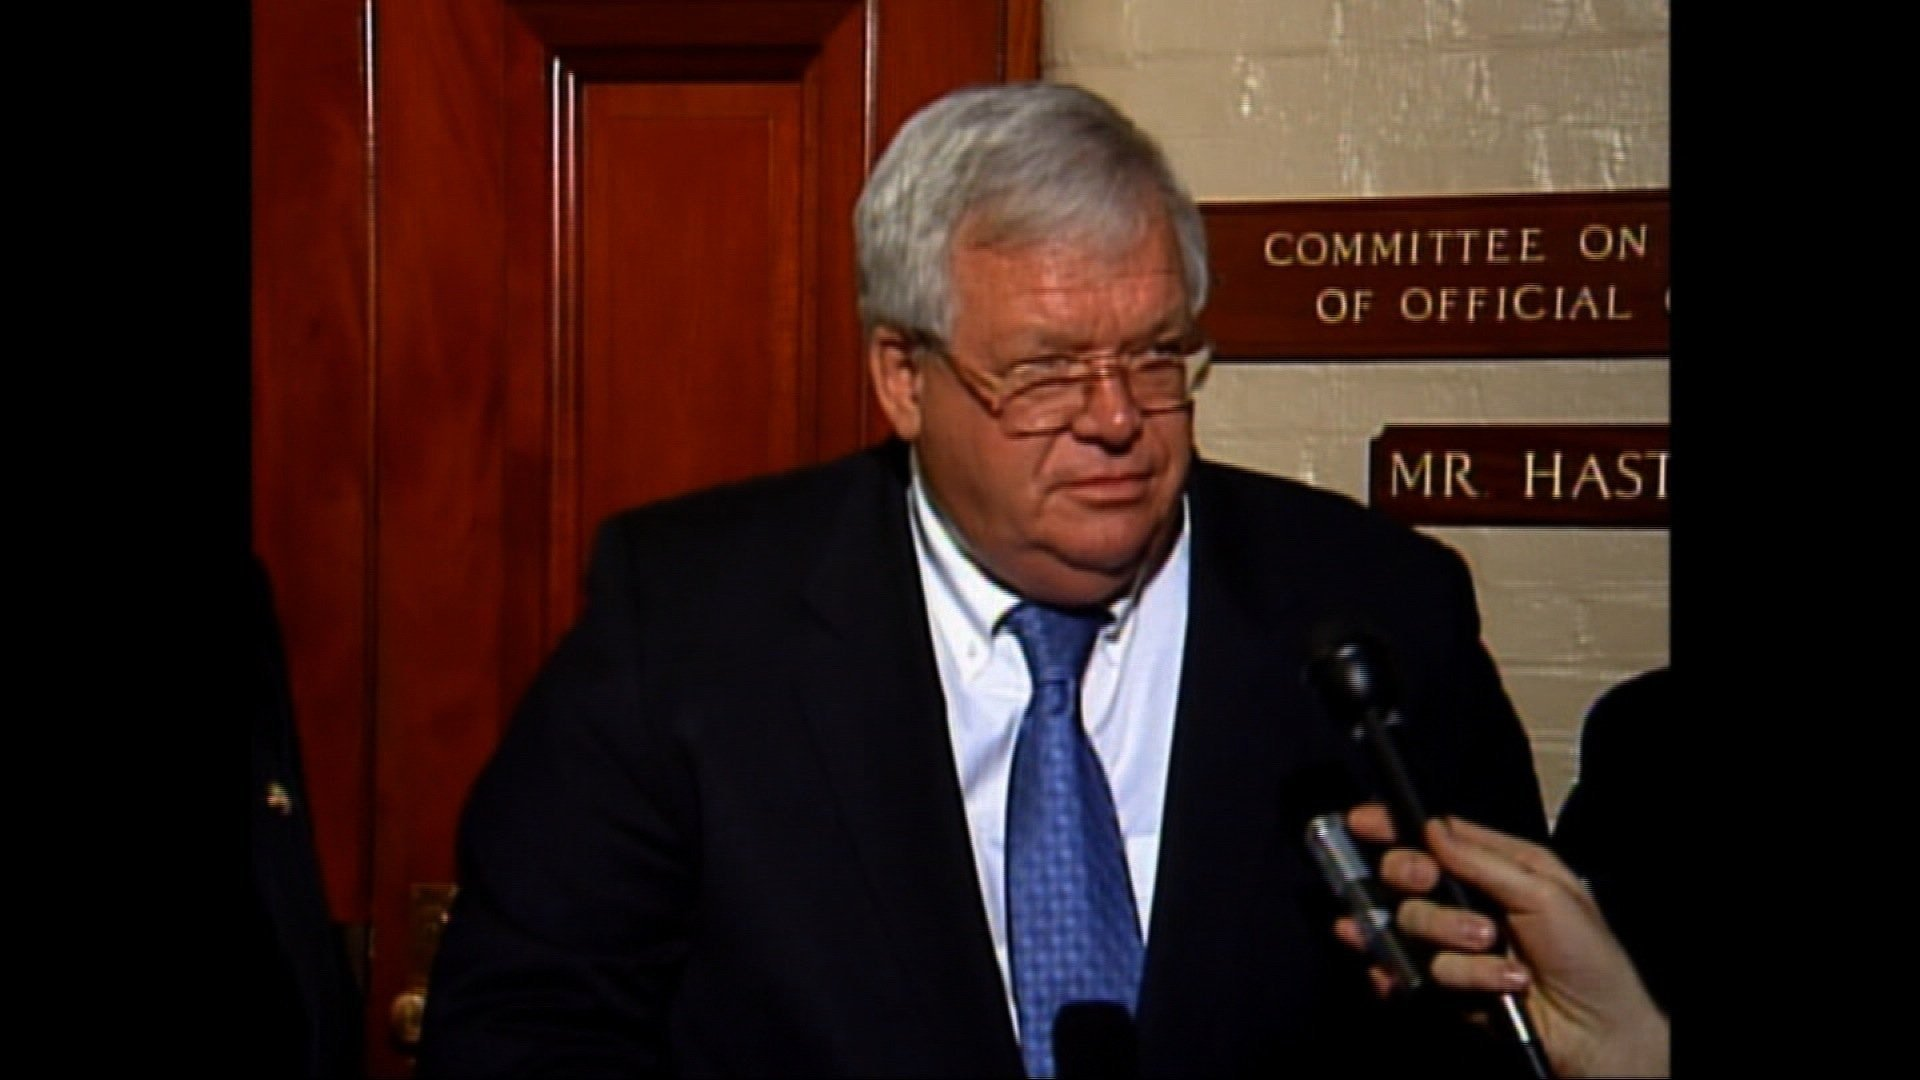 Hastert Released from Prison After 13 Months